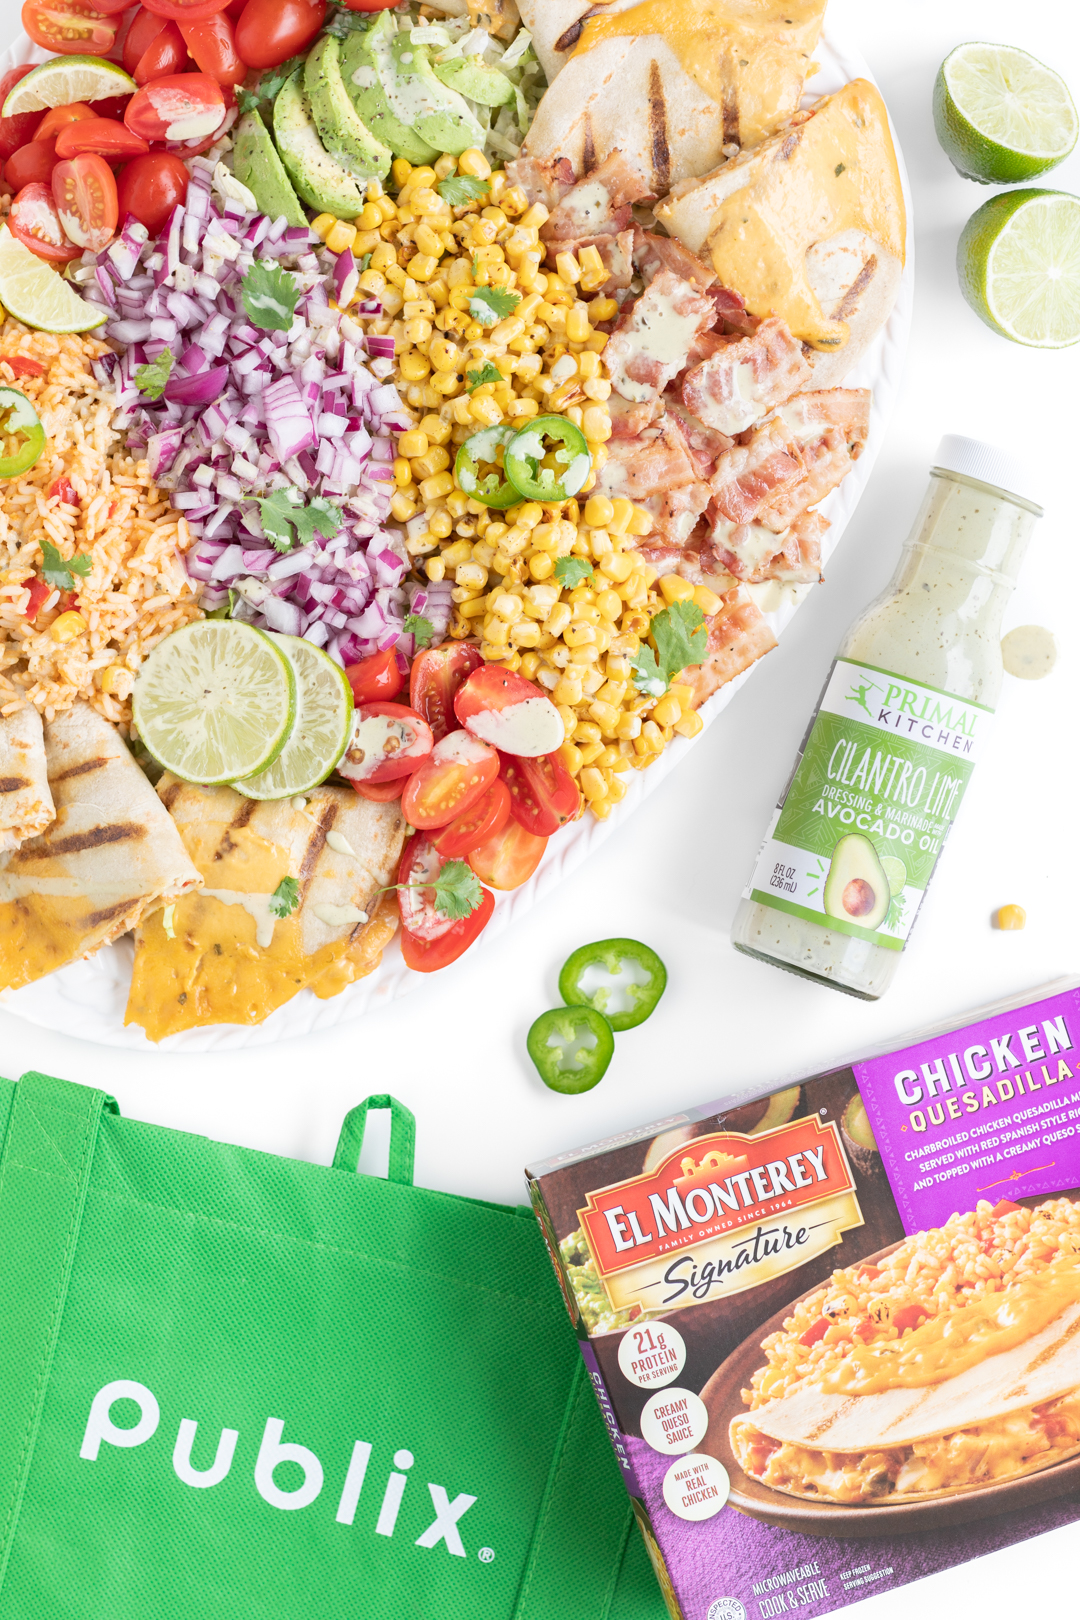 Over the top photo of large family salad, reusable publix shopping bag, el monterey quesadilla meal and primal kitchen lime and cilantro dressing